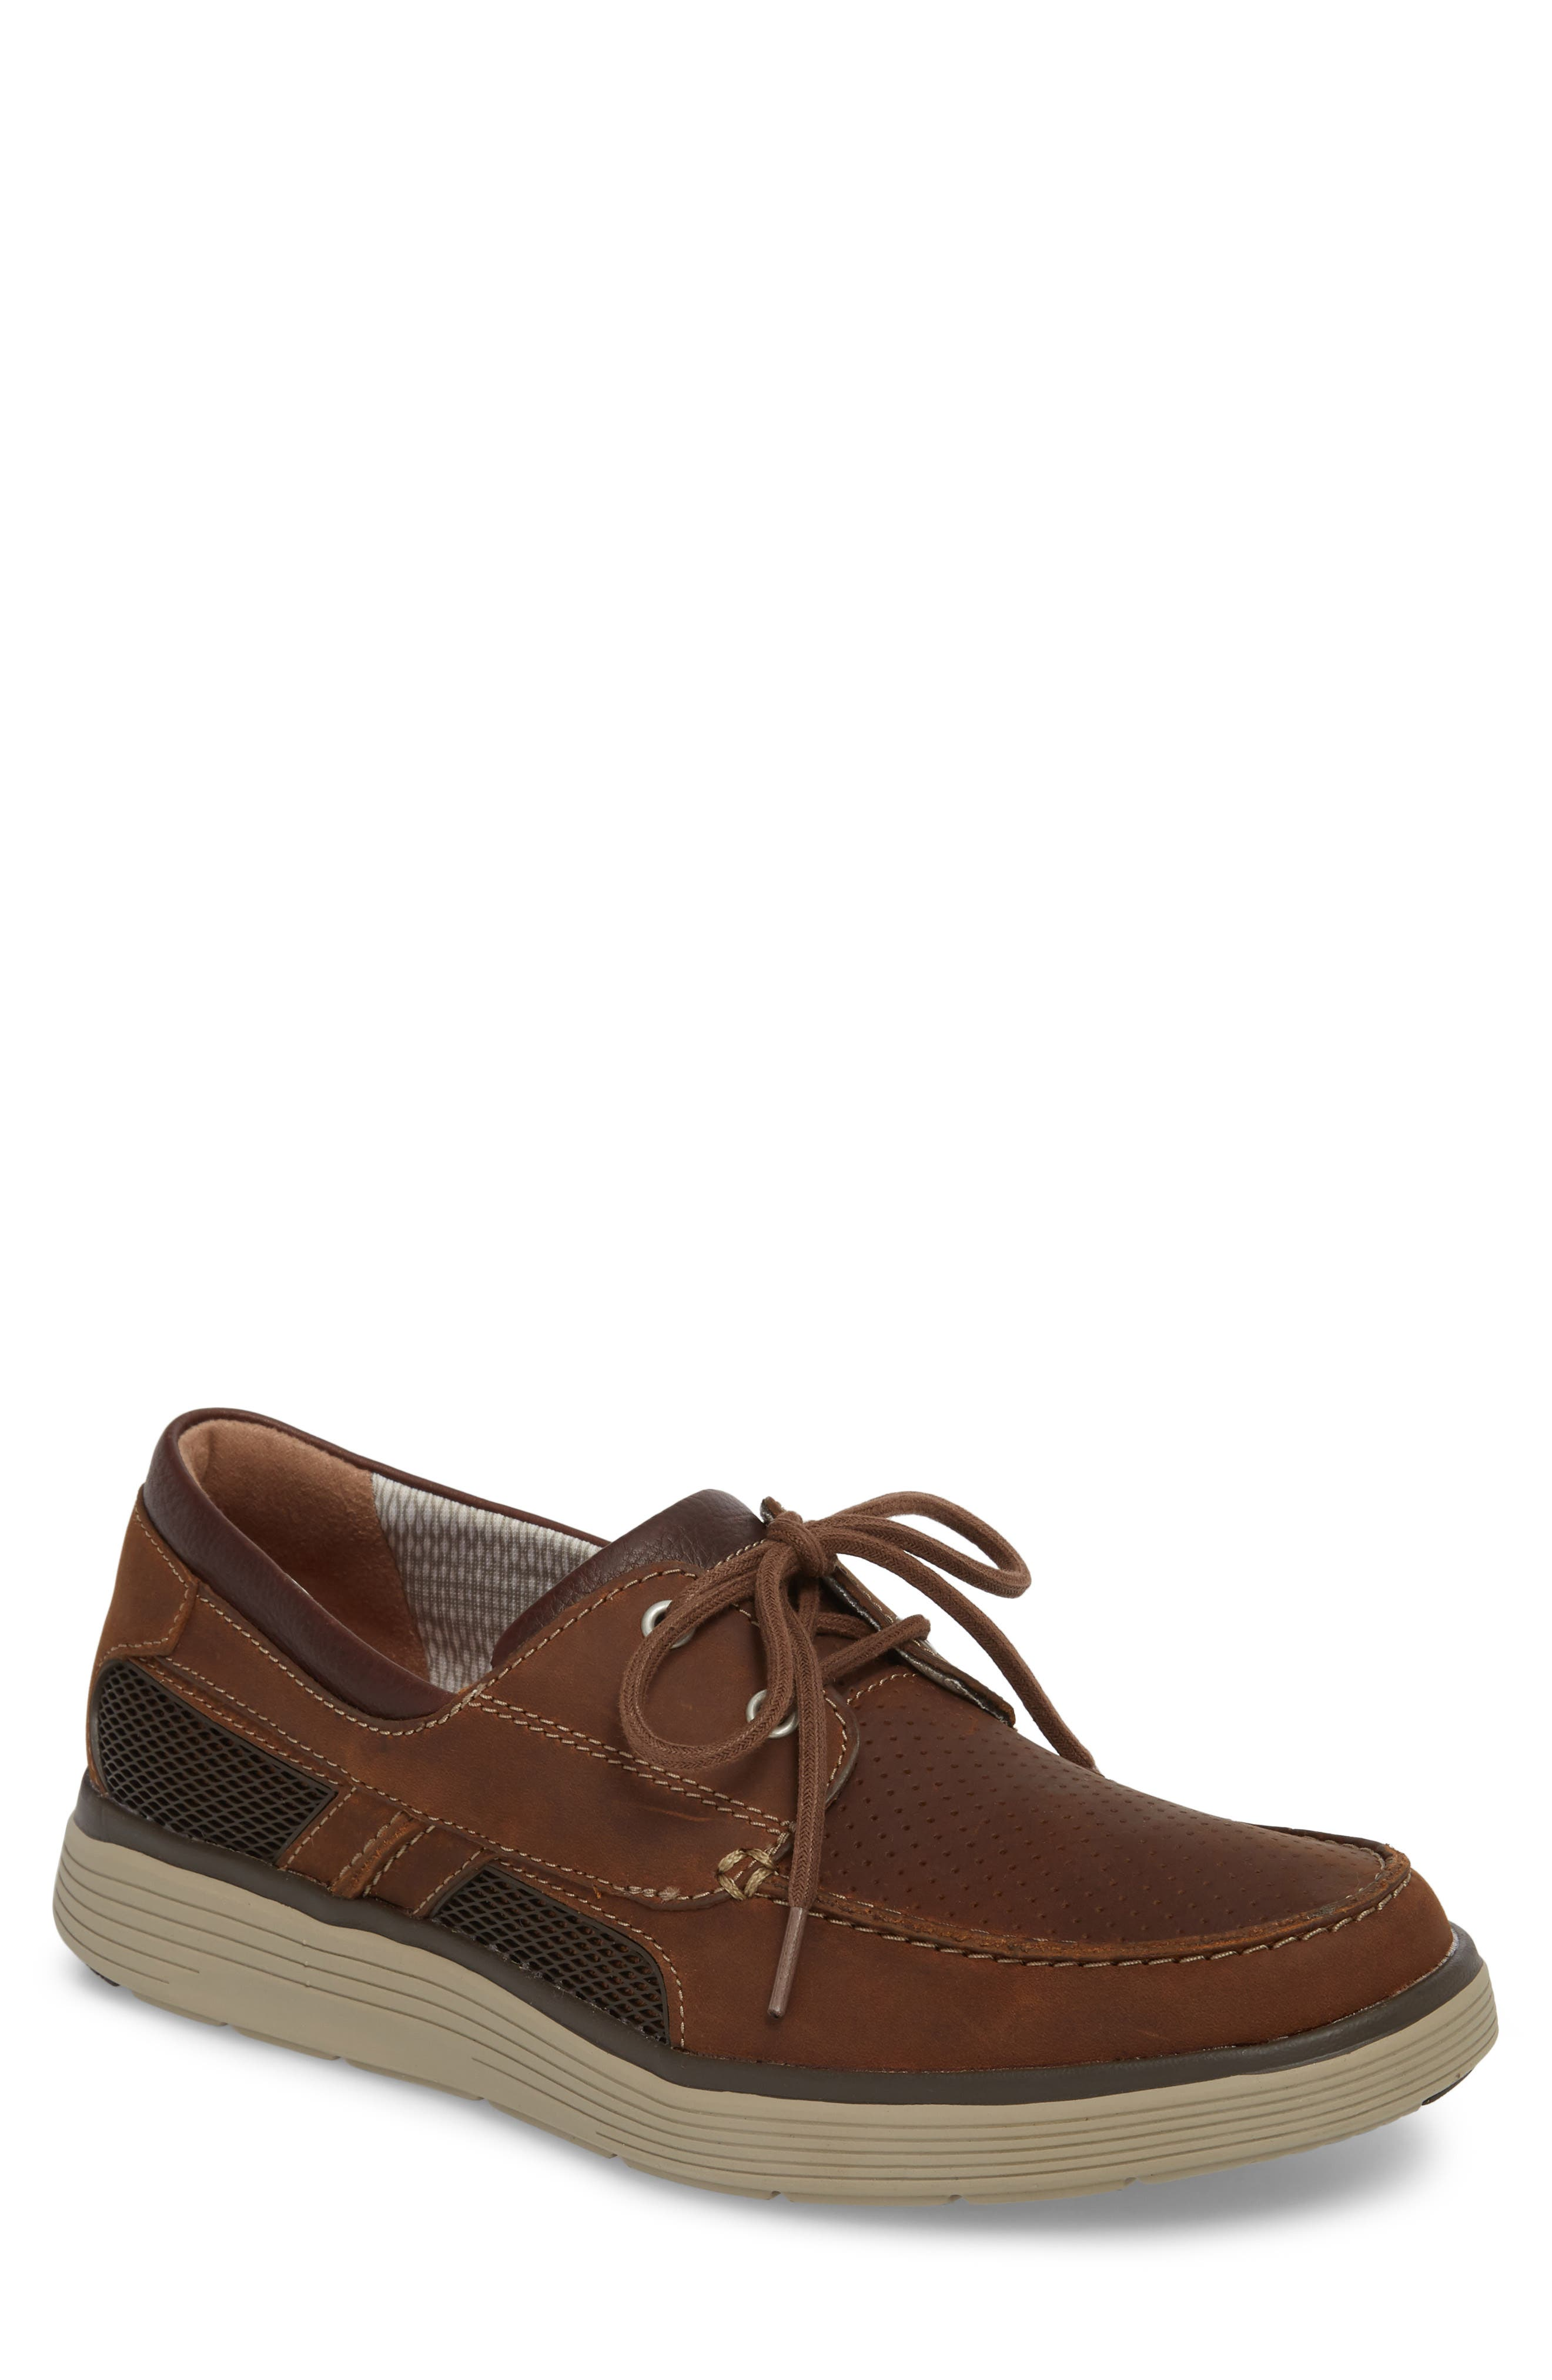 Clarks<sup>®</sup> Unabobe Step Boat Shoe,                         Main,                         color, DARK TAN LEATHER